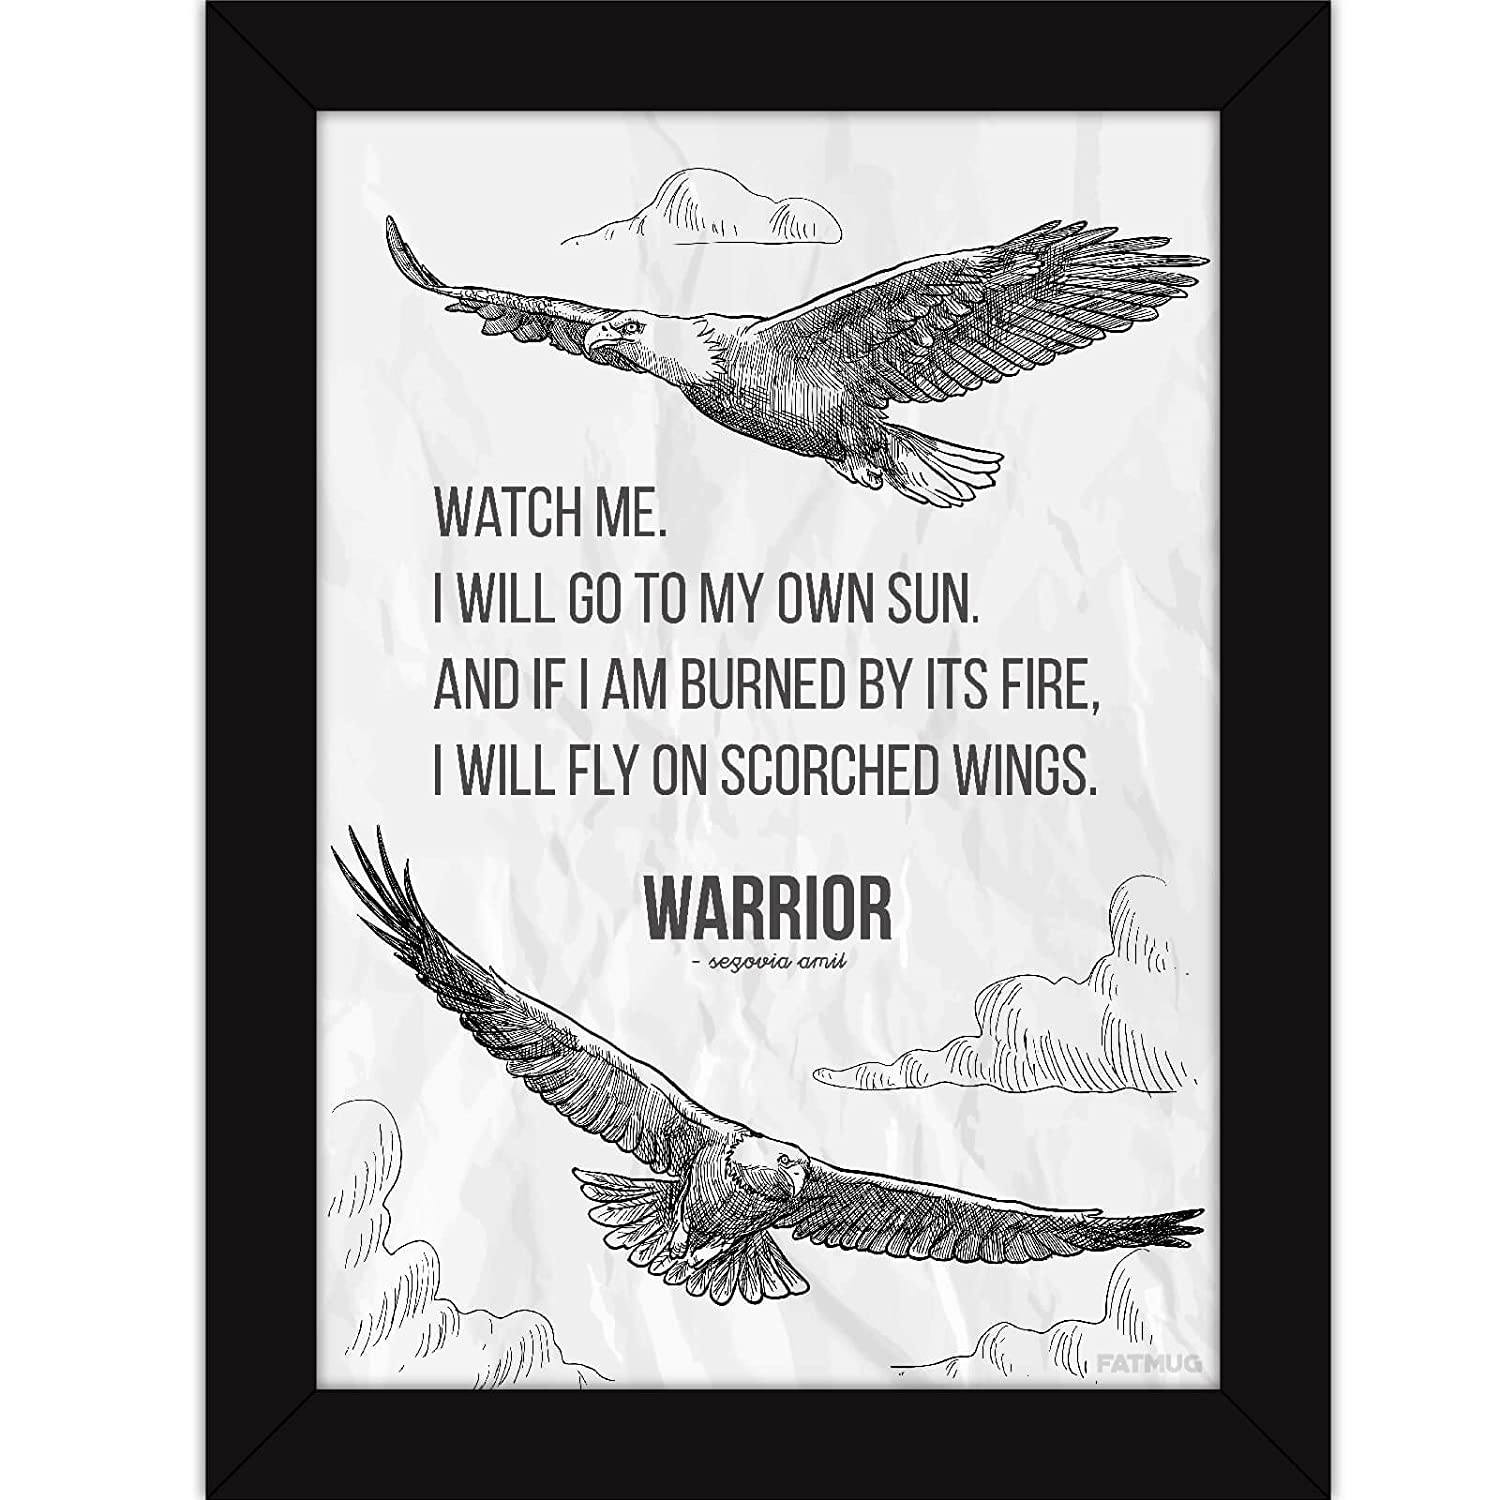 Inspirational Posters With Frames - Motivational Quotes For Office And Room Decor - Warrior Poem